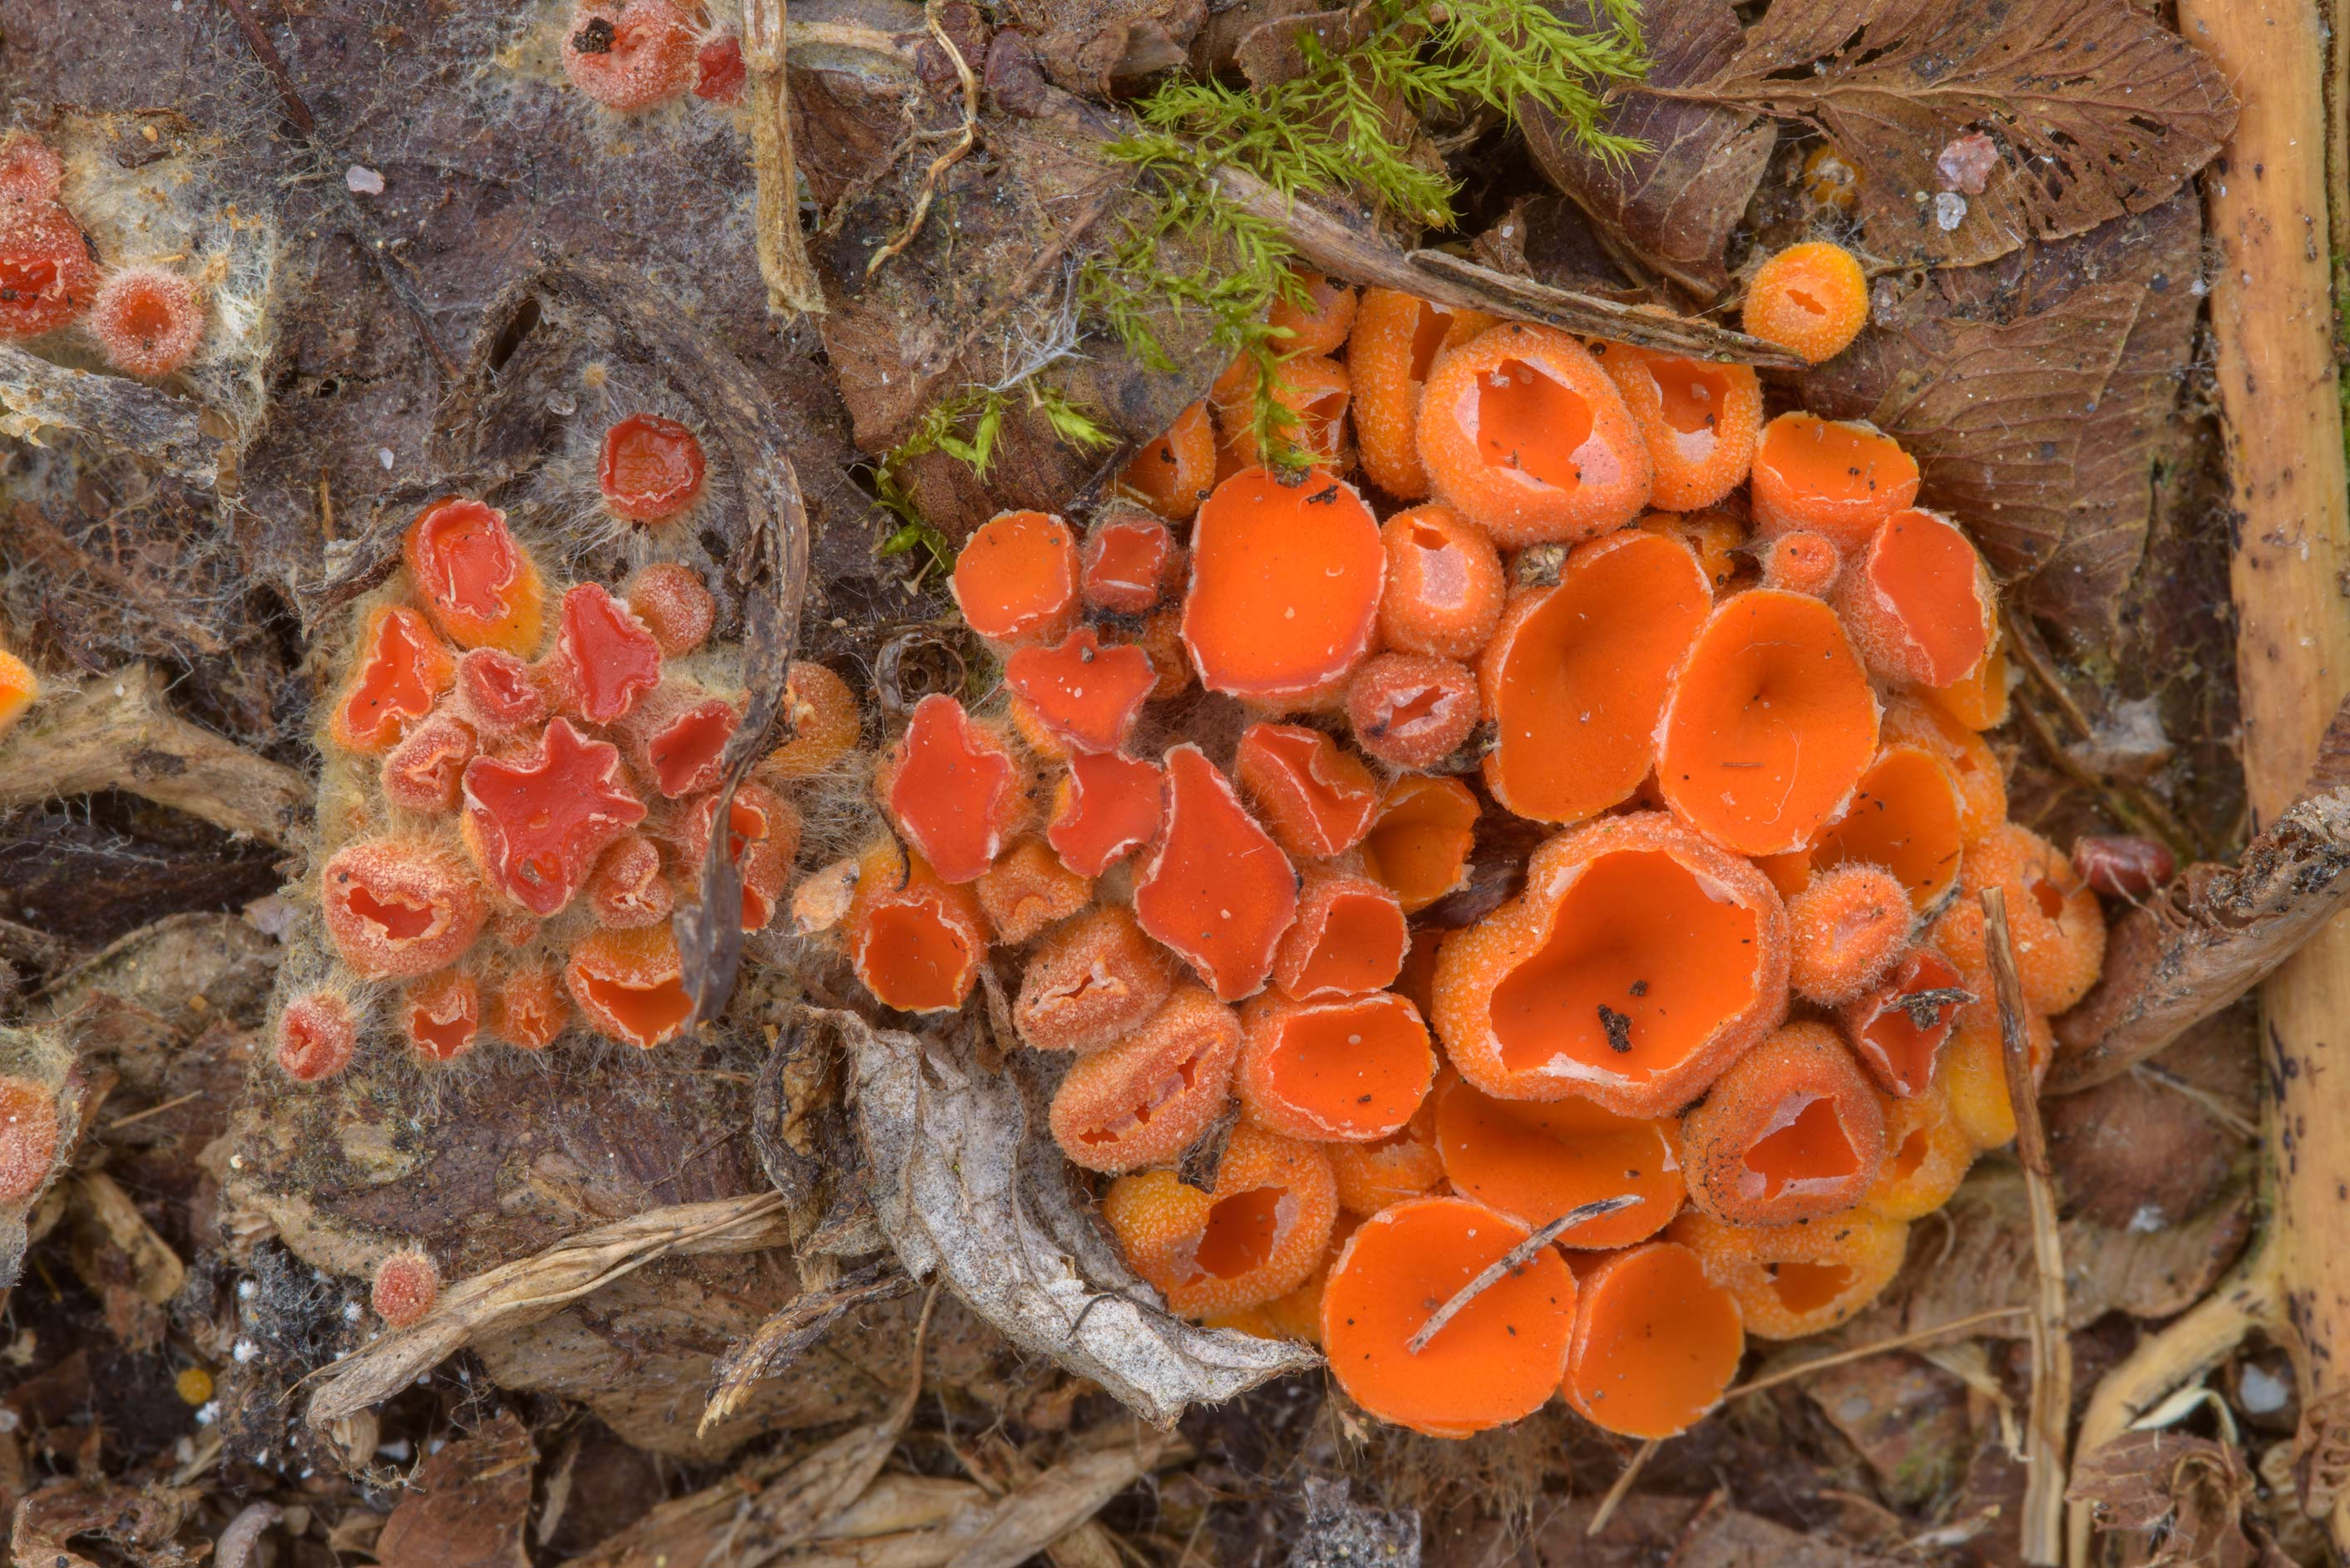 Cluster of Byssonectria terrestris mushrooms in...miles north from St.Petersburg. Russia